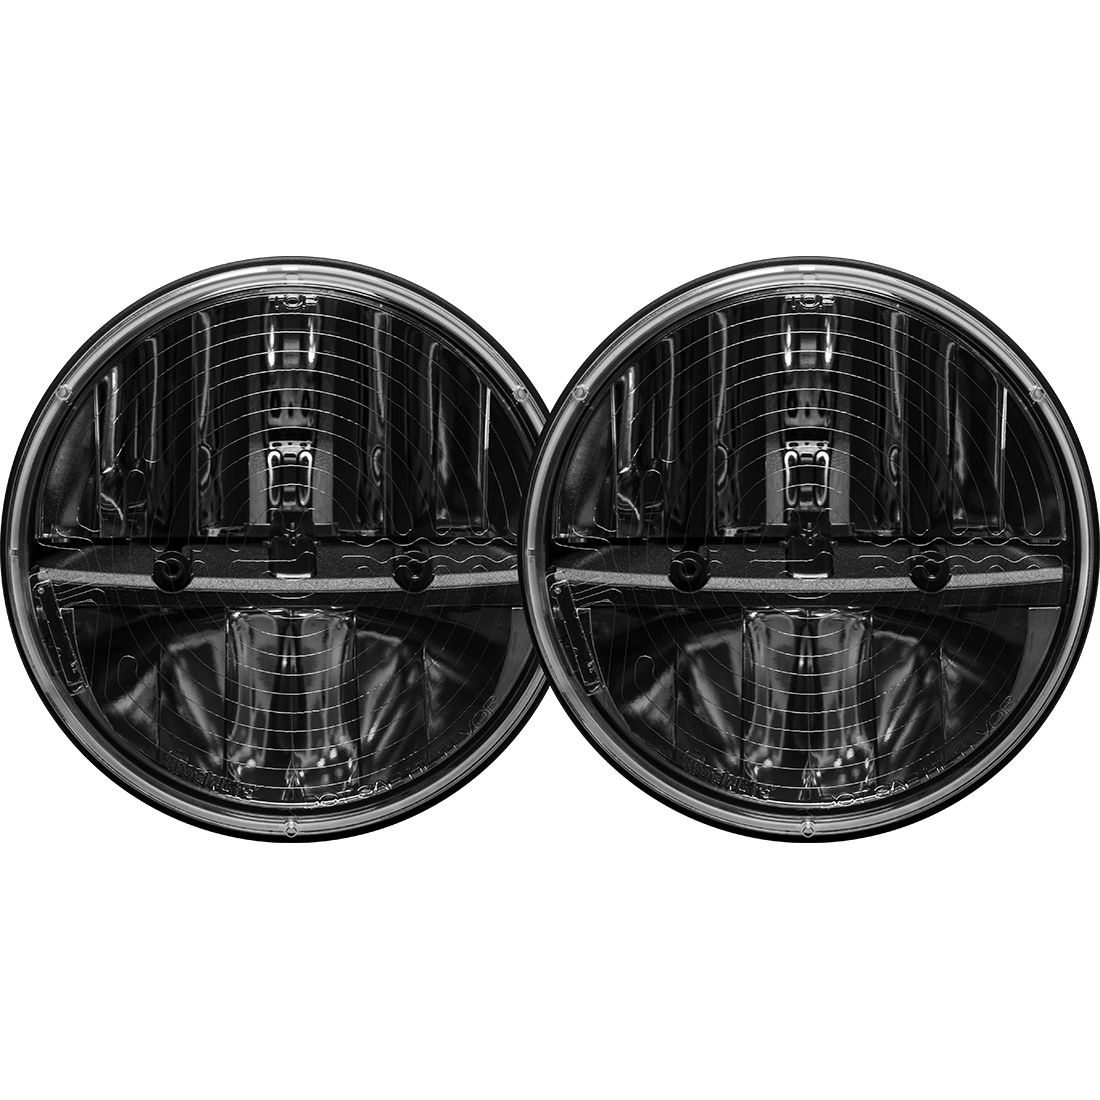 Rigid Industries 7in Round LED Heated Headlight Kit - JK